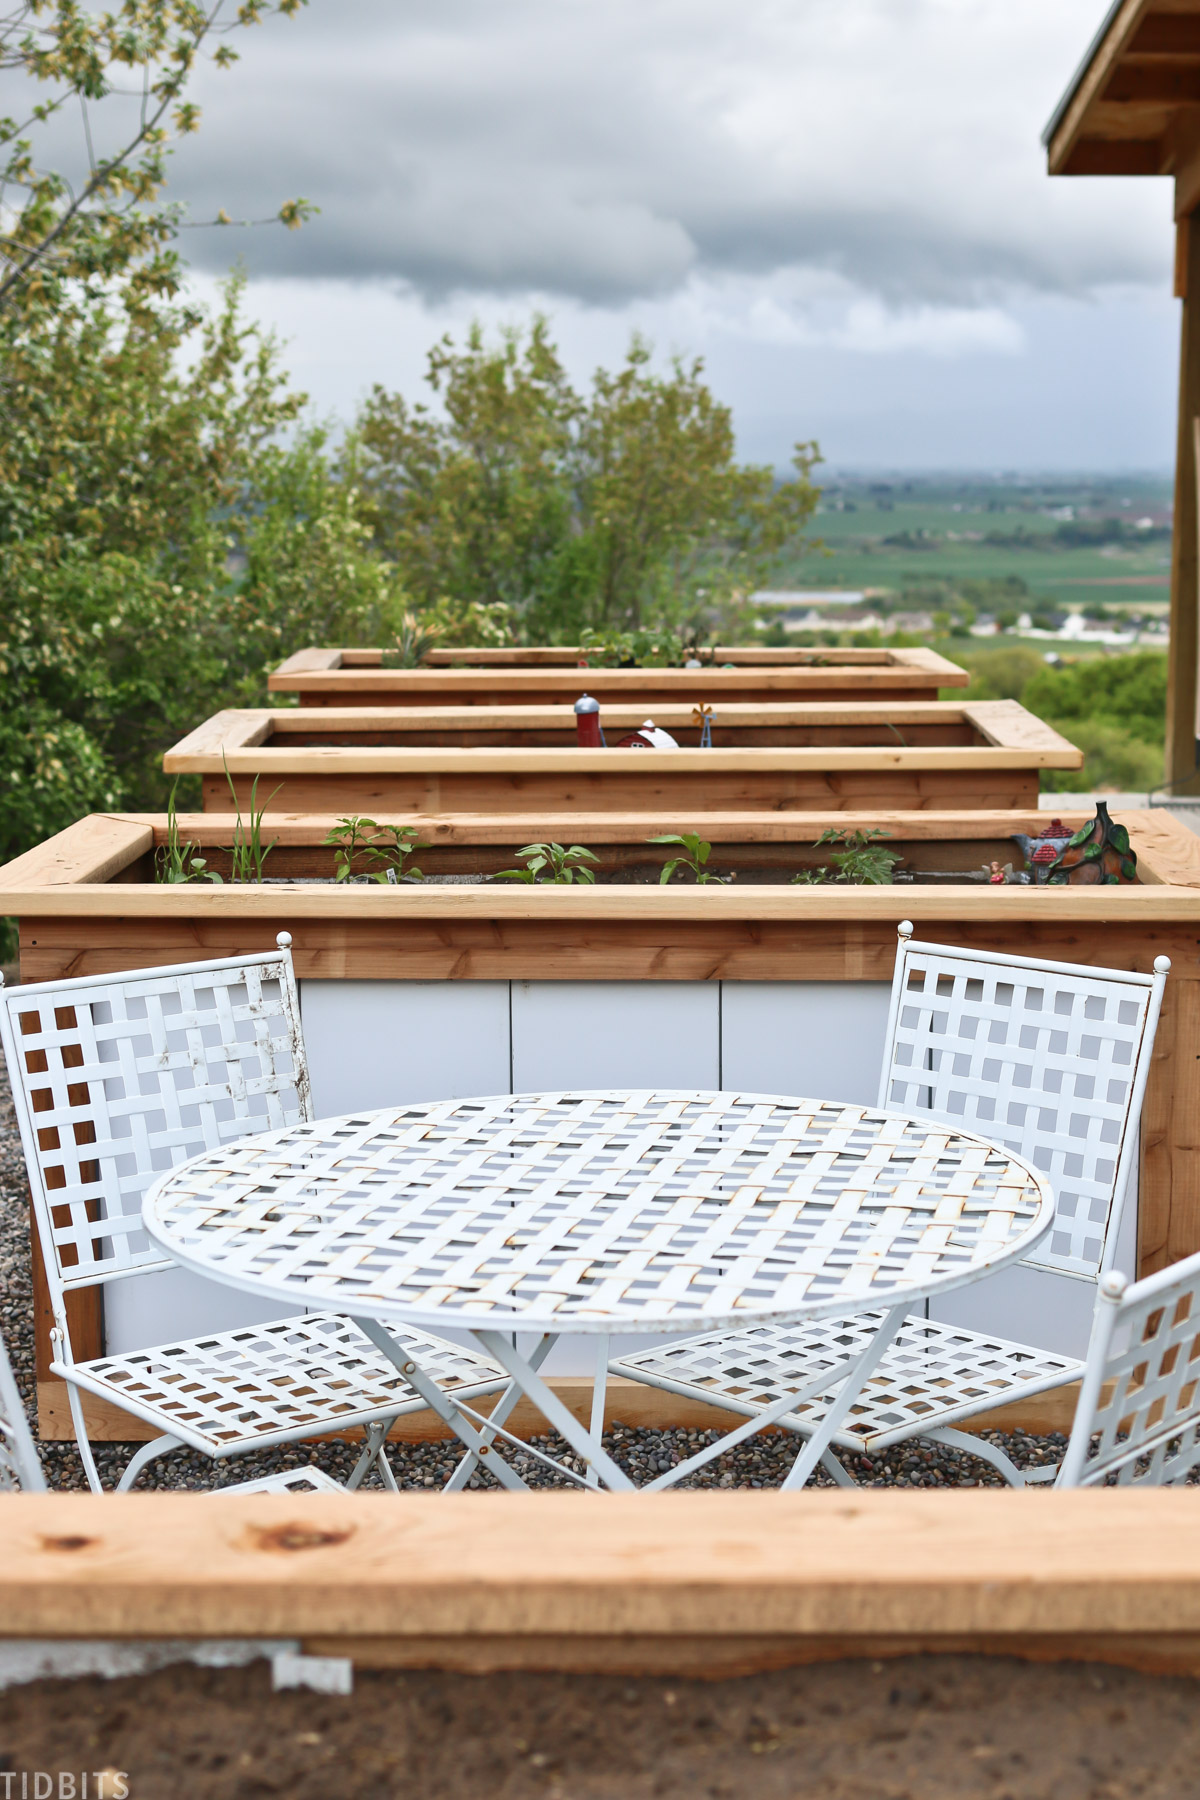 outdoor table and chairs in front of three raised garden beds